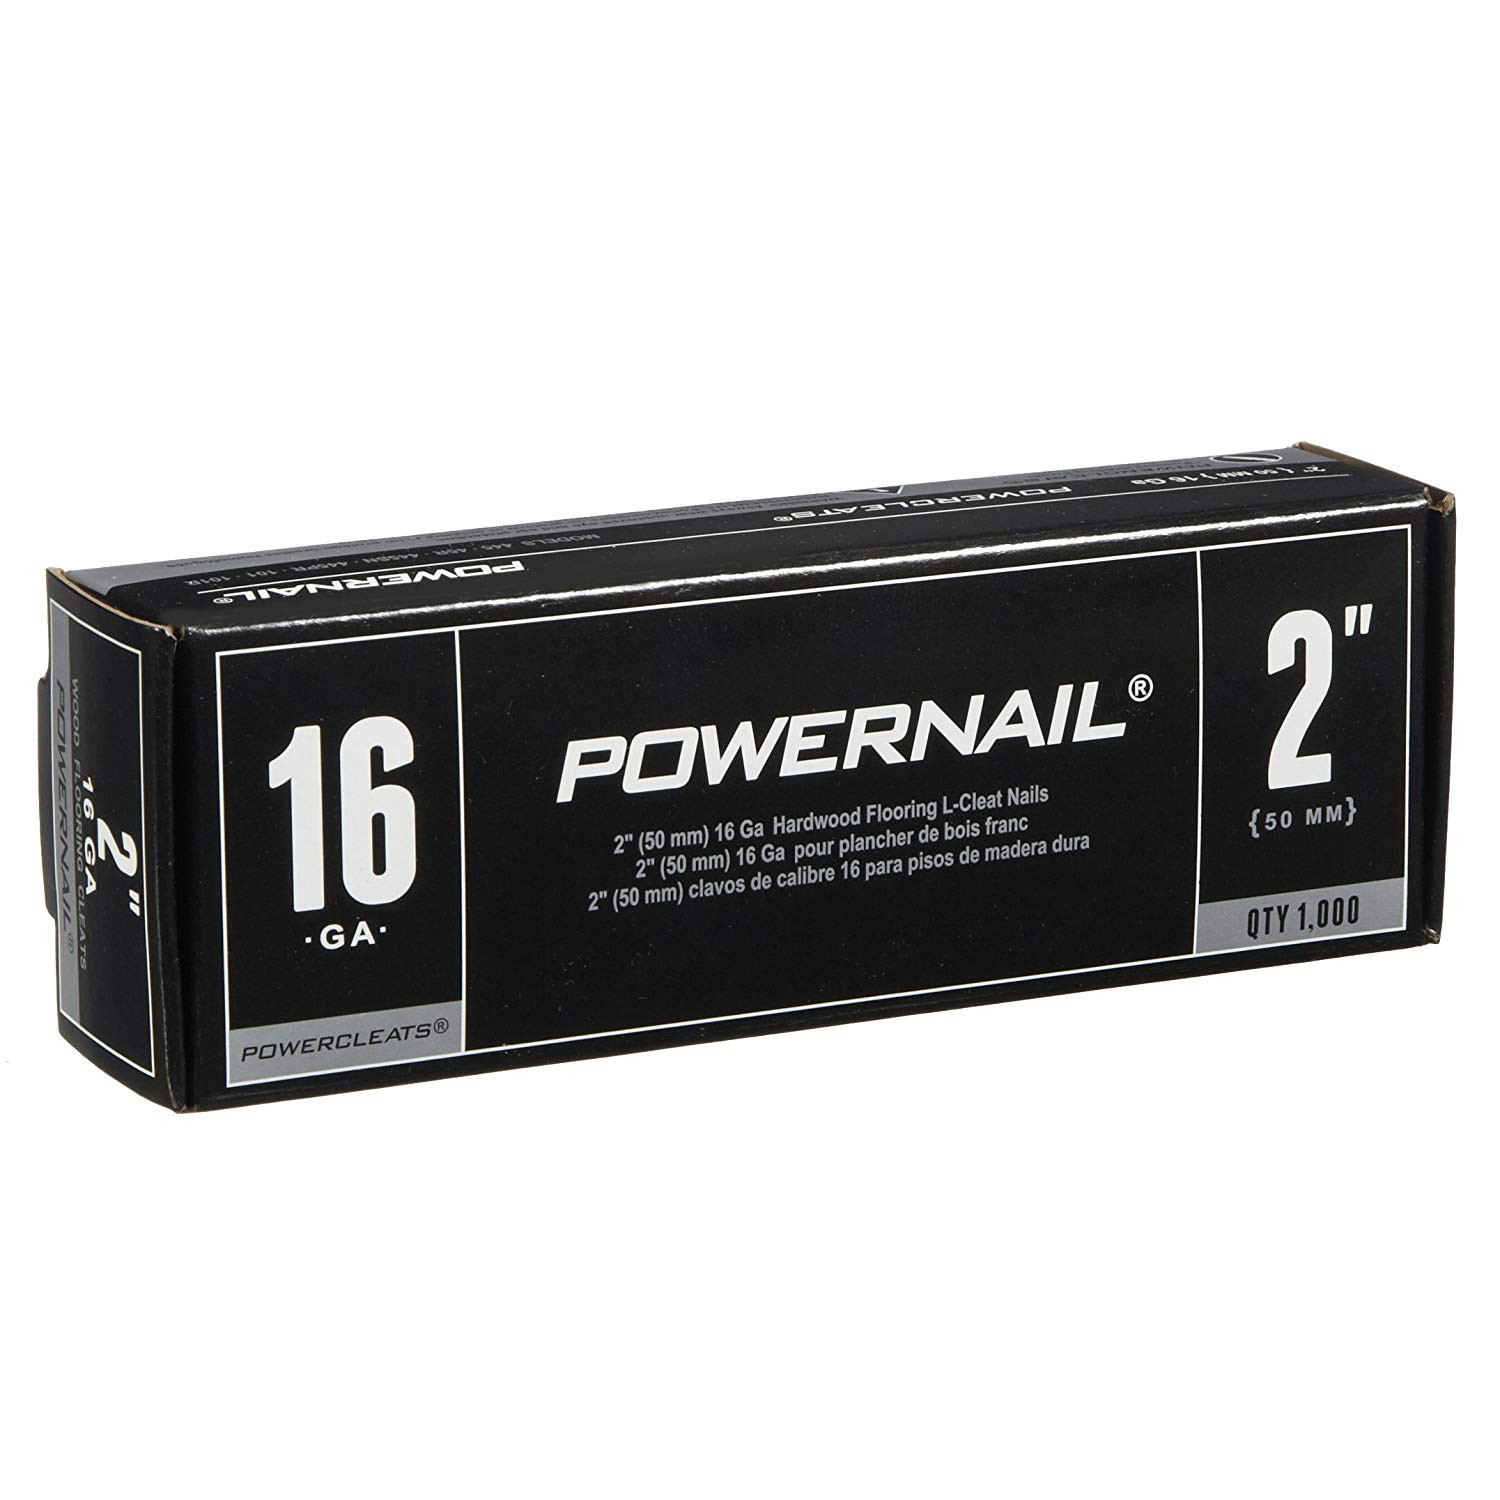 how to install hardwood floors without nailer of amazon com powernail powercleat 16ga 2 l cleat box of 5000 home inside amazon com powernail powercleat 16ga 2 l cleat box of 5000 home improvement